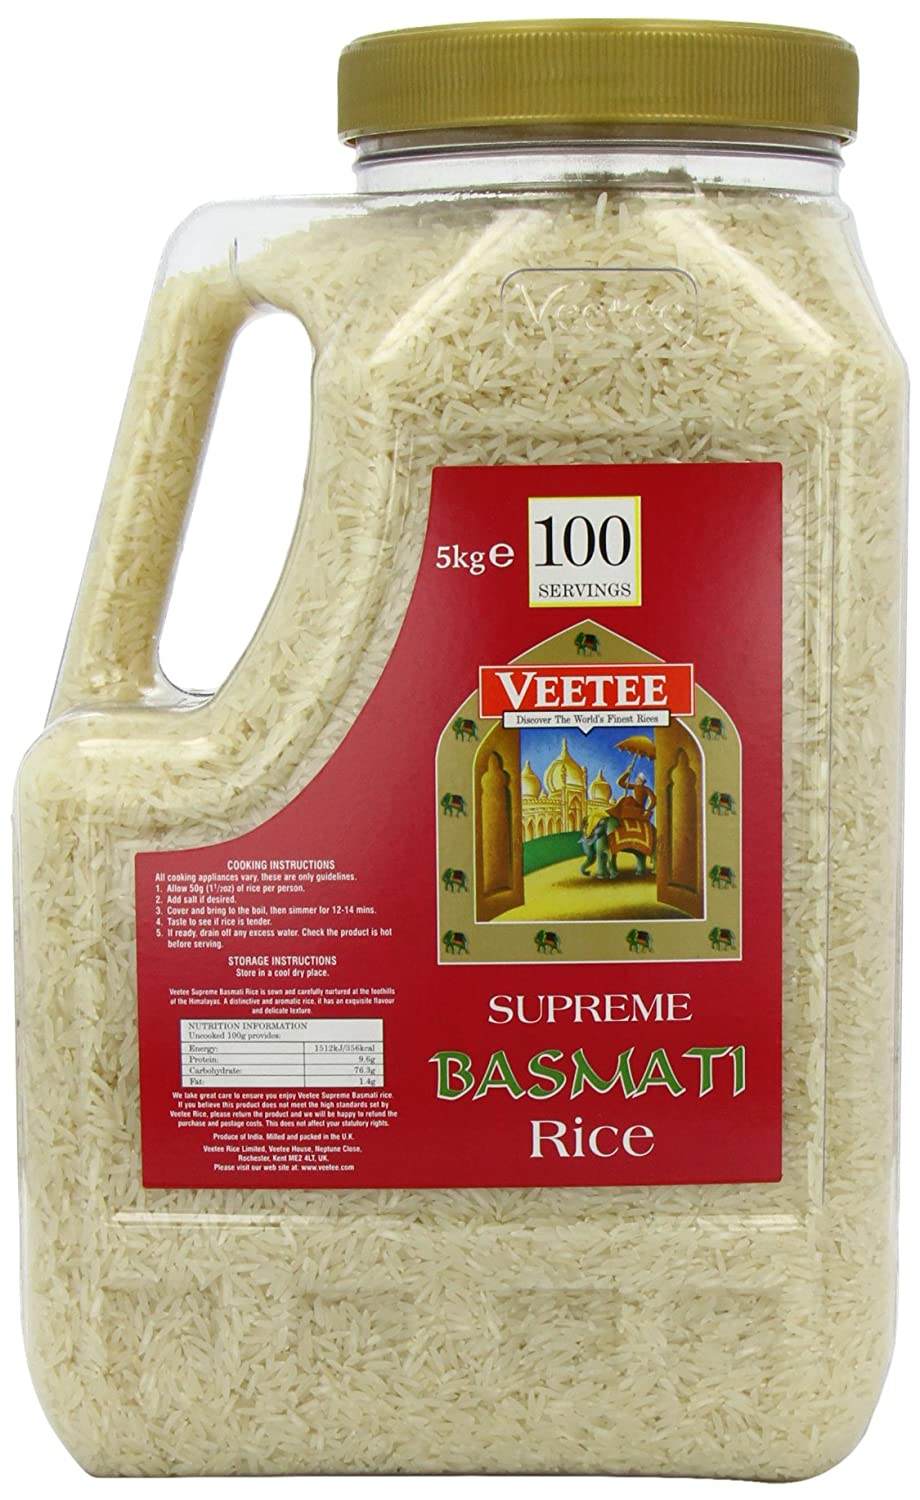 Veetee Supreme Basmati Rice 5 kg Jar: Amazon.es ...